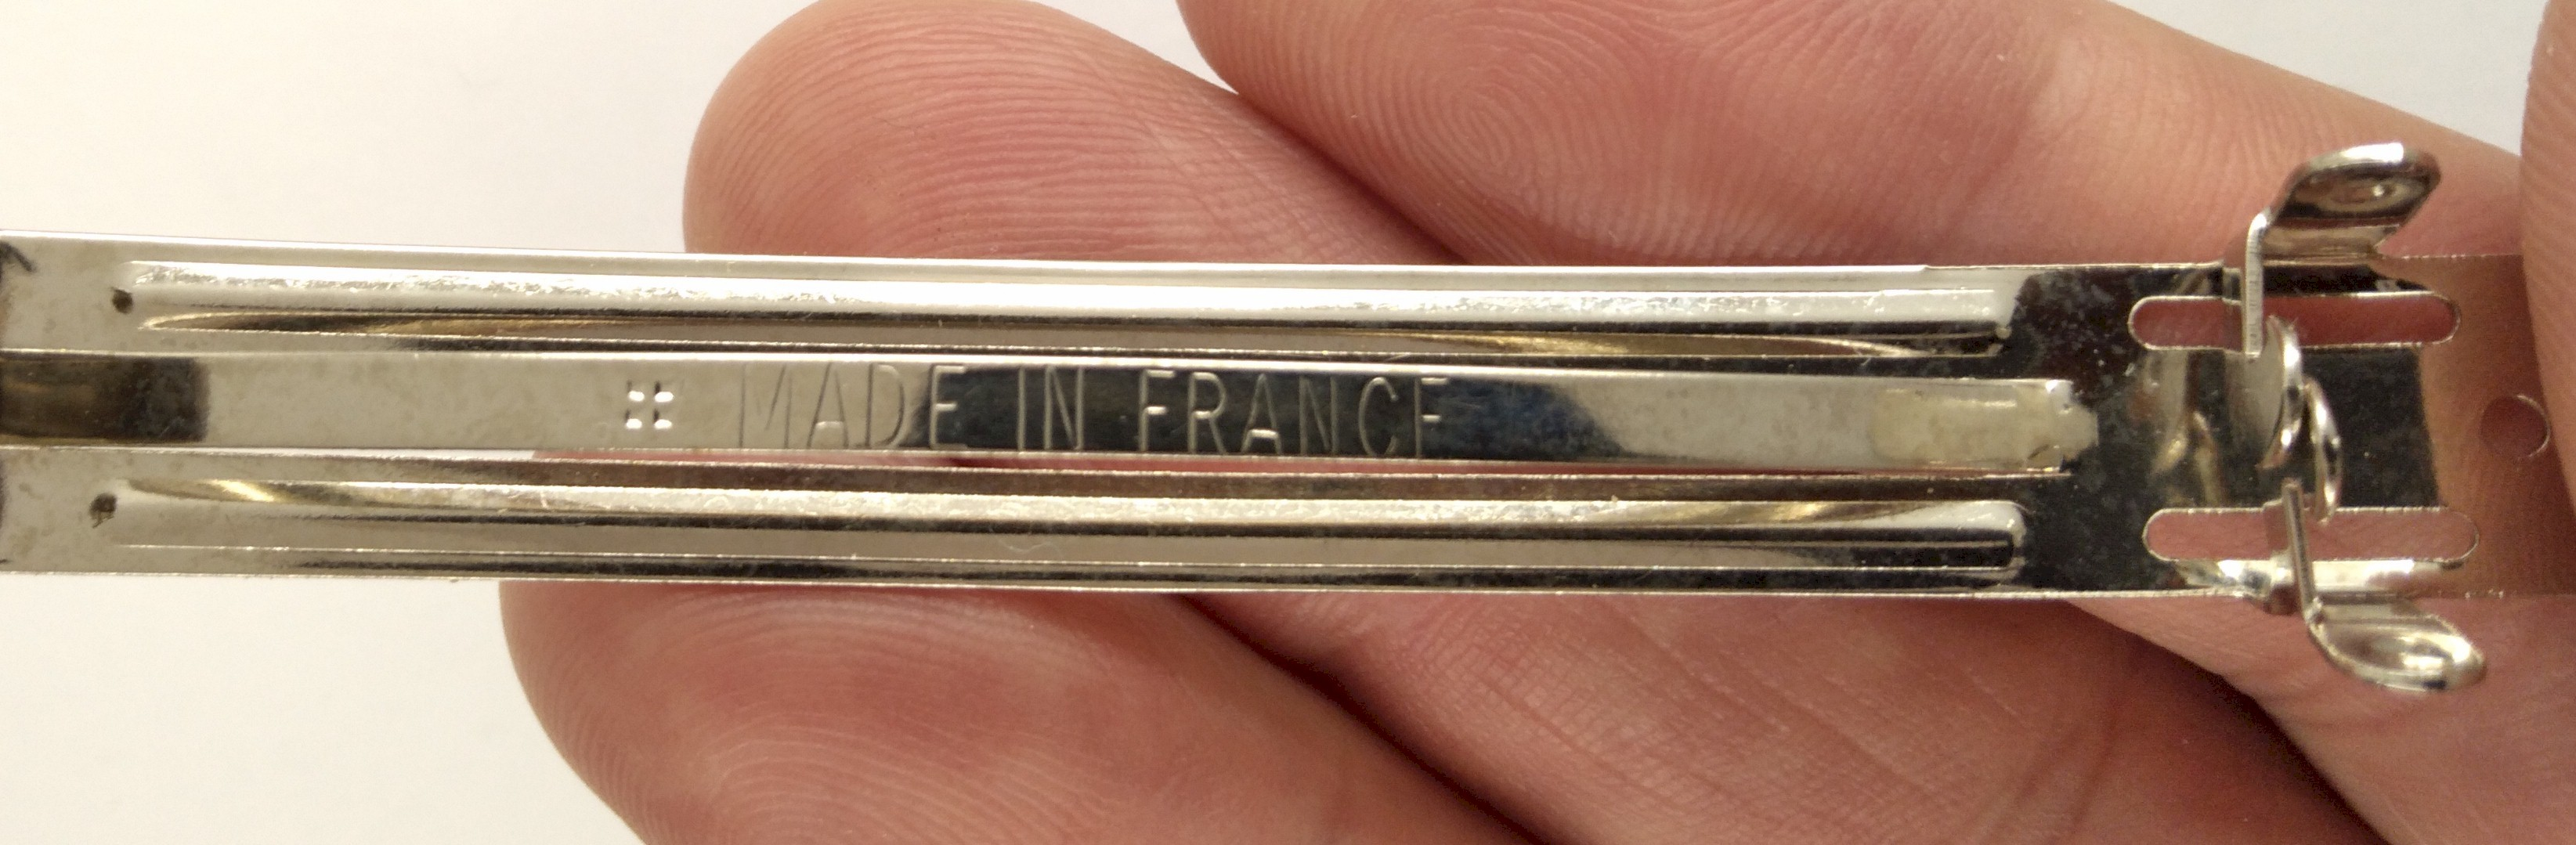 70mm 2.75inch Genuine Made in France Barrette Back stainless steel hair clip